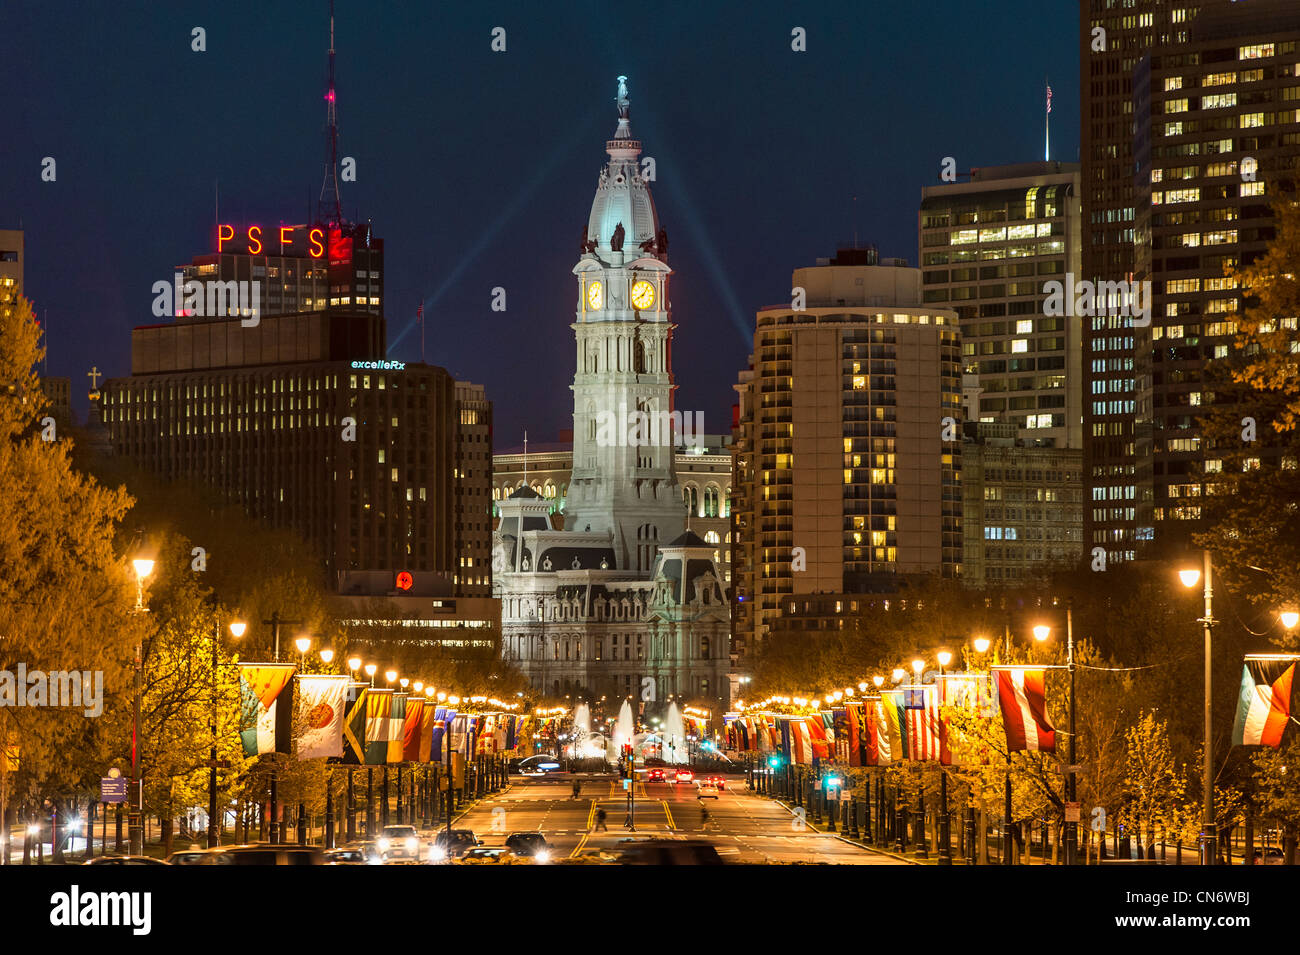 Ben Franklin Parkway and City Hall, Philadelphia, Pennsylvania, USA - Stock Image